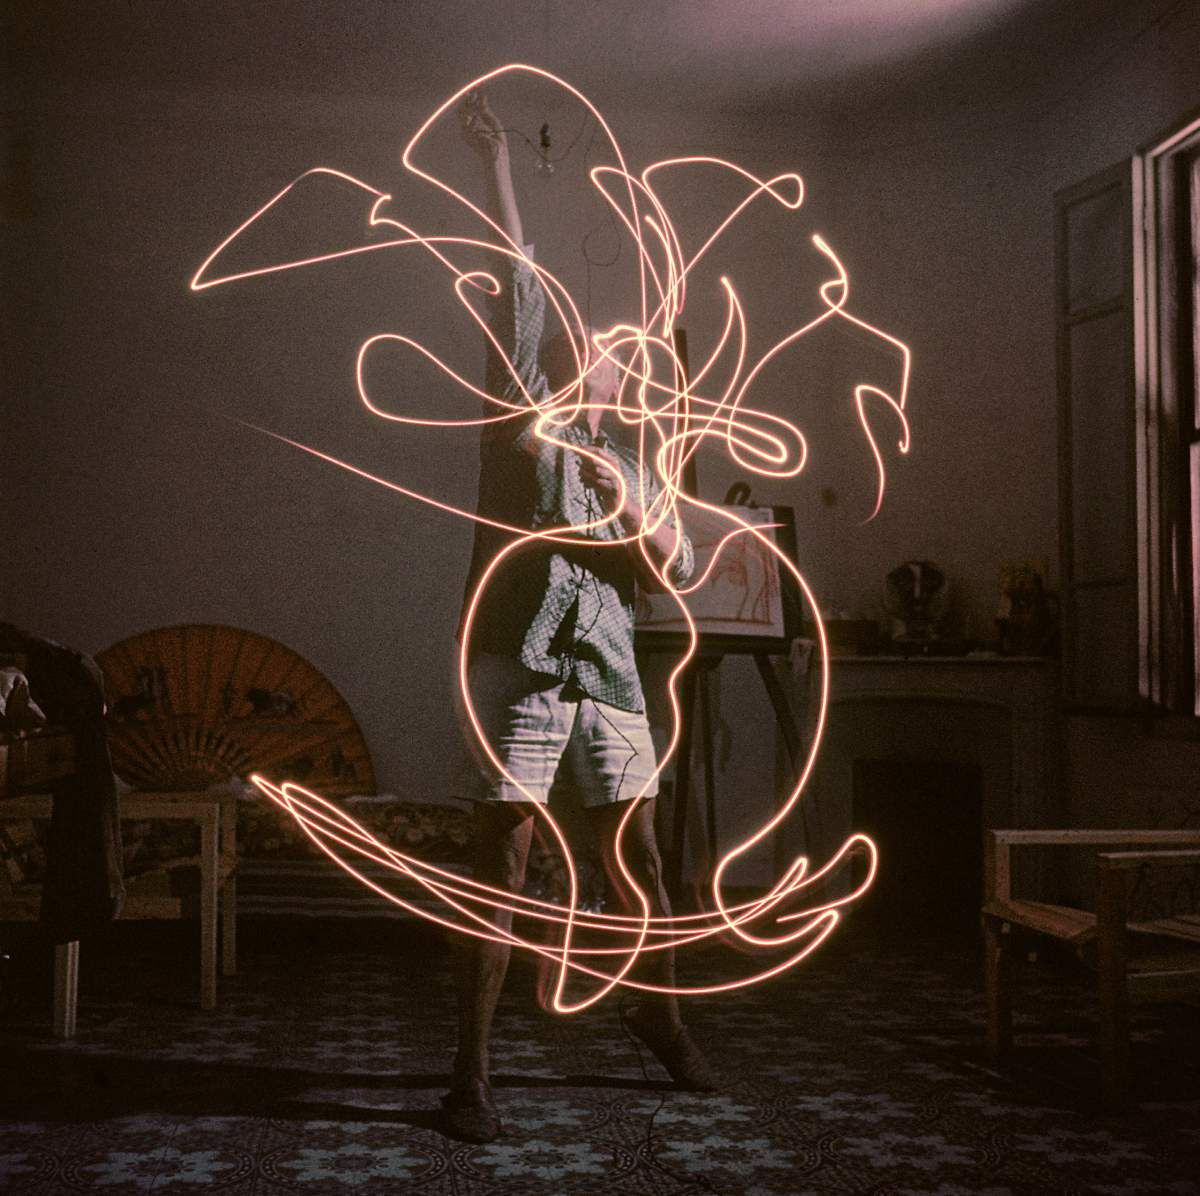 Pablo Picasso draws with light